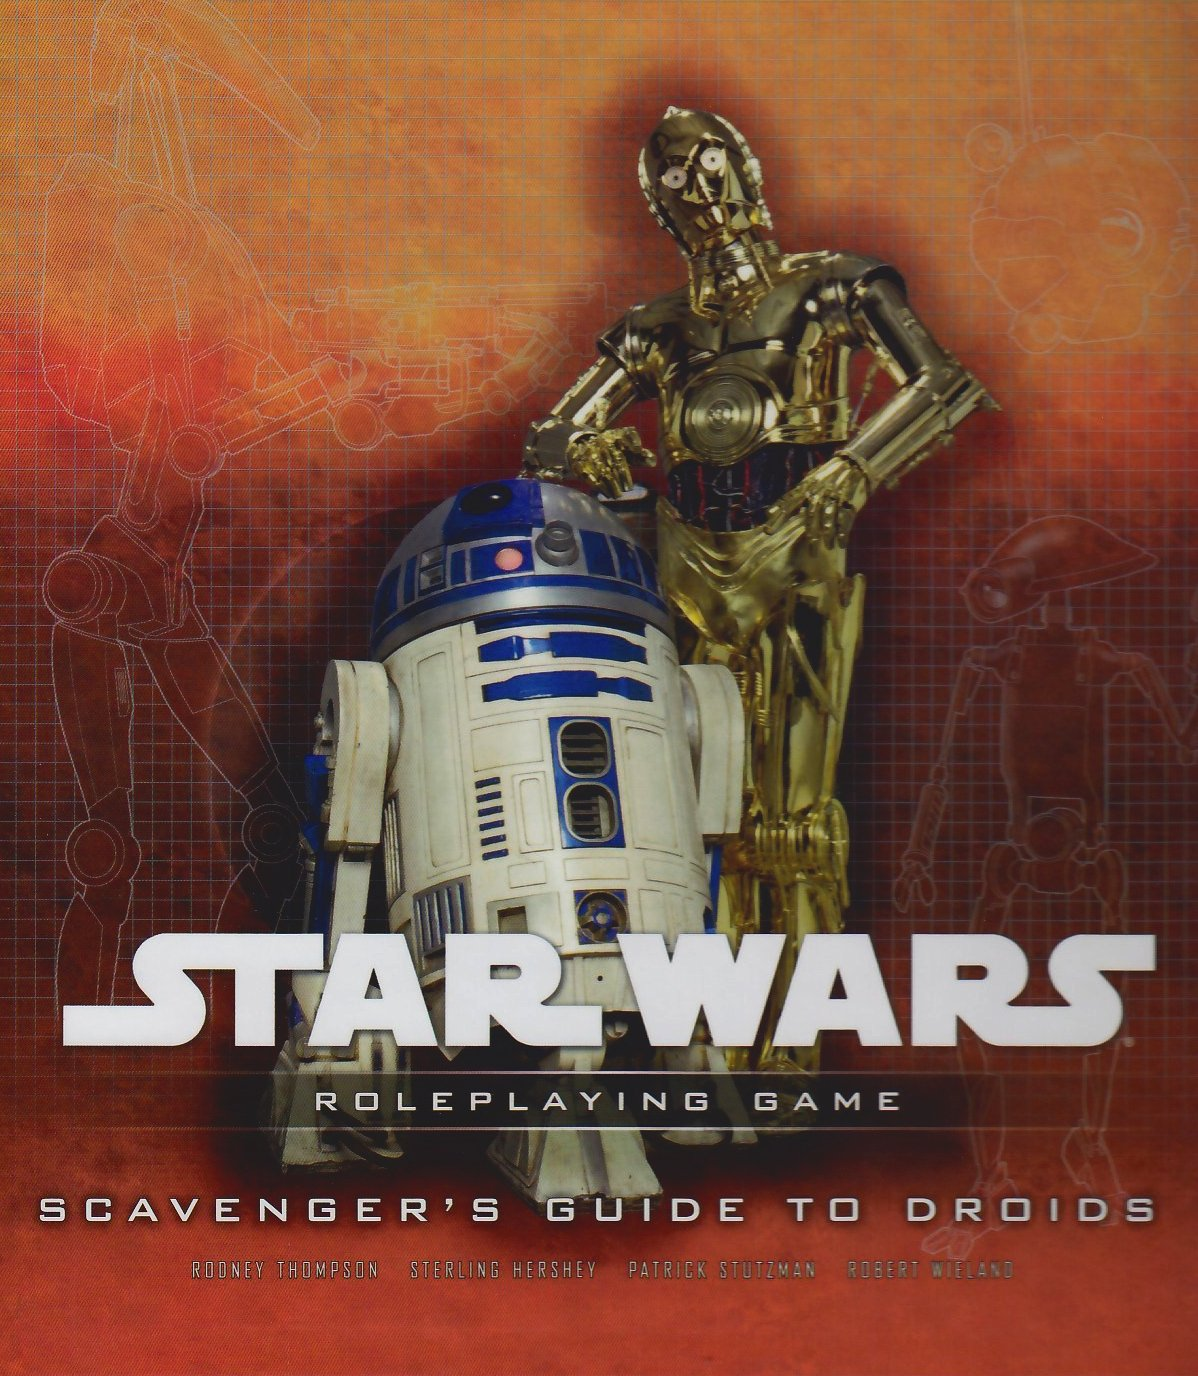 Star Wars: Scavenger's Guide to Droids